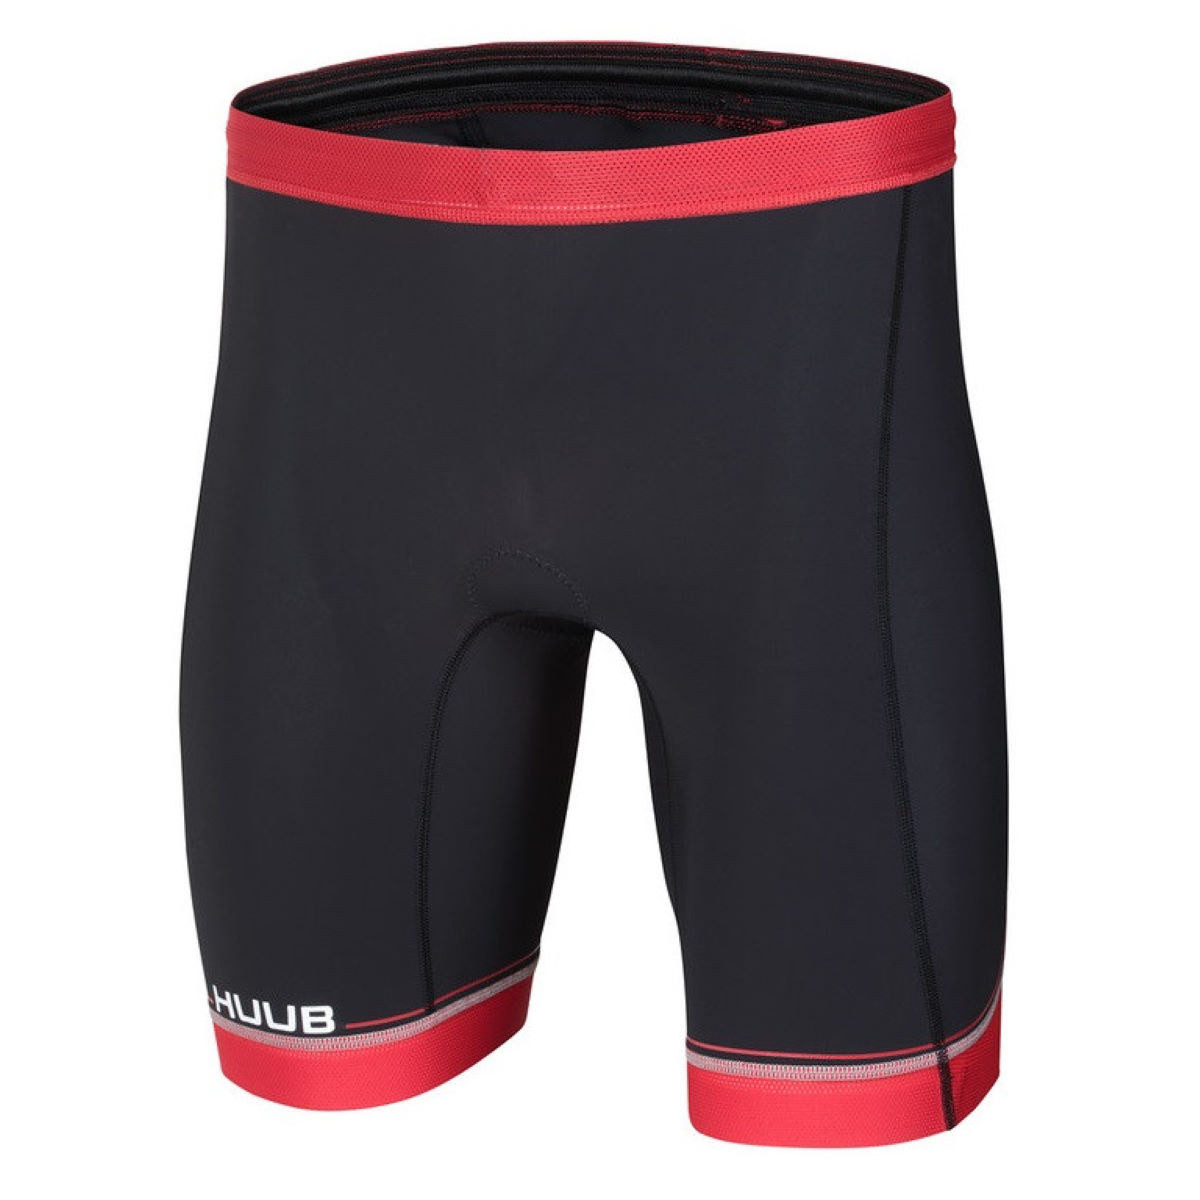 Cuissard court HUUB Core Tri - L Noir/Rouge Shorts de triathlon